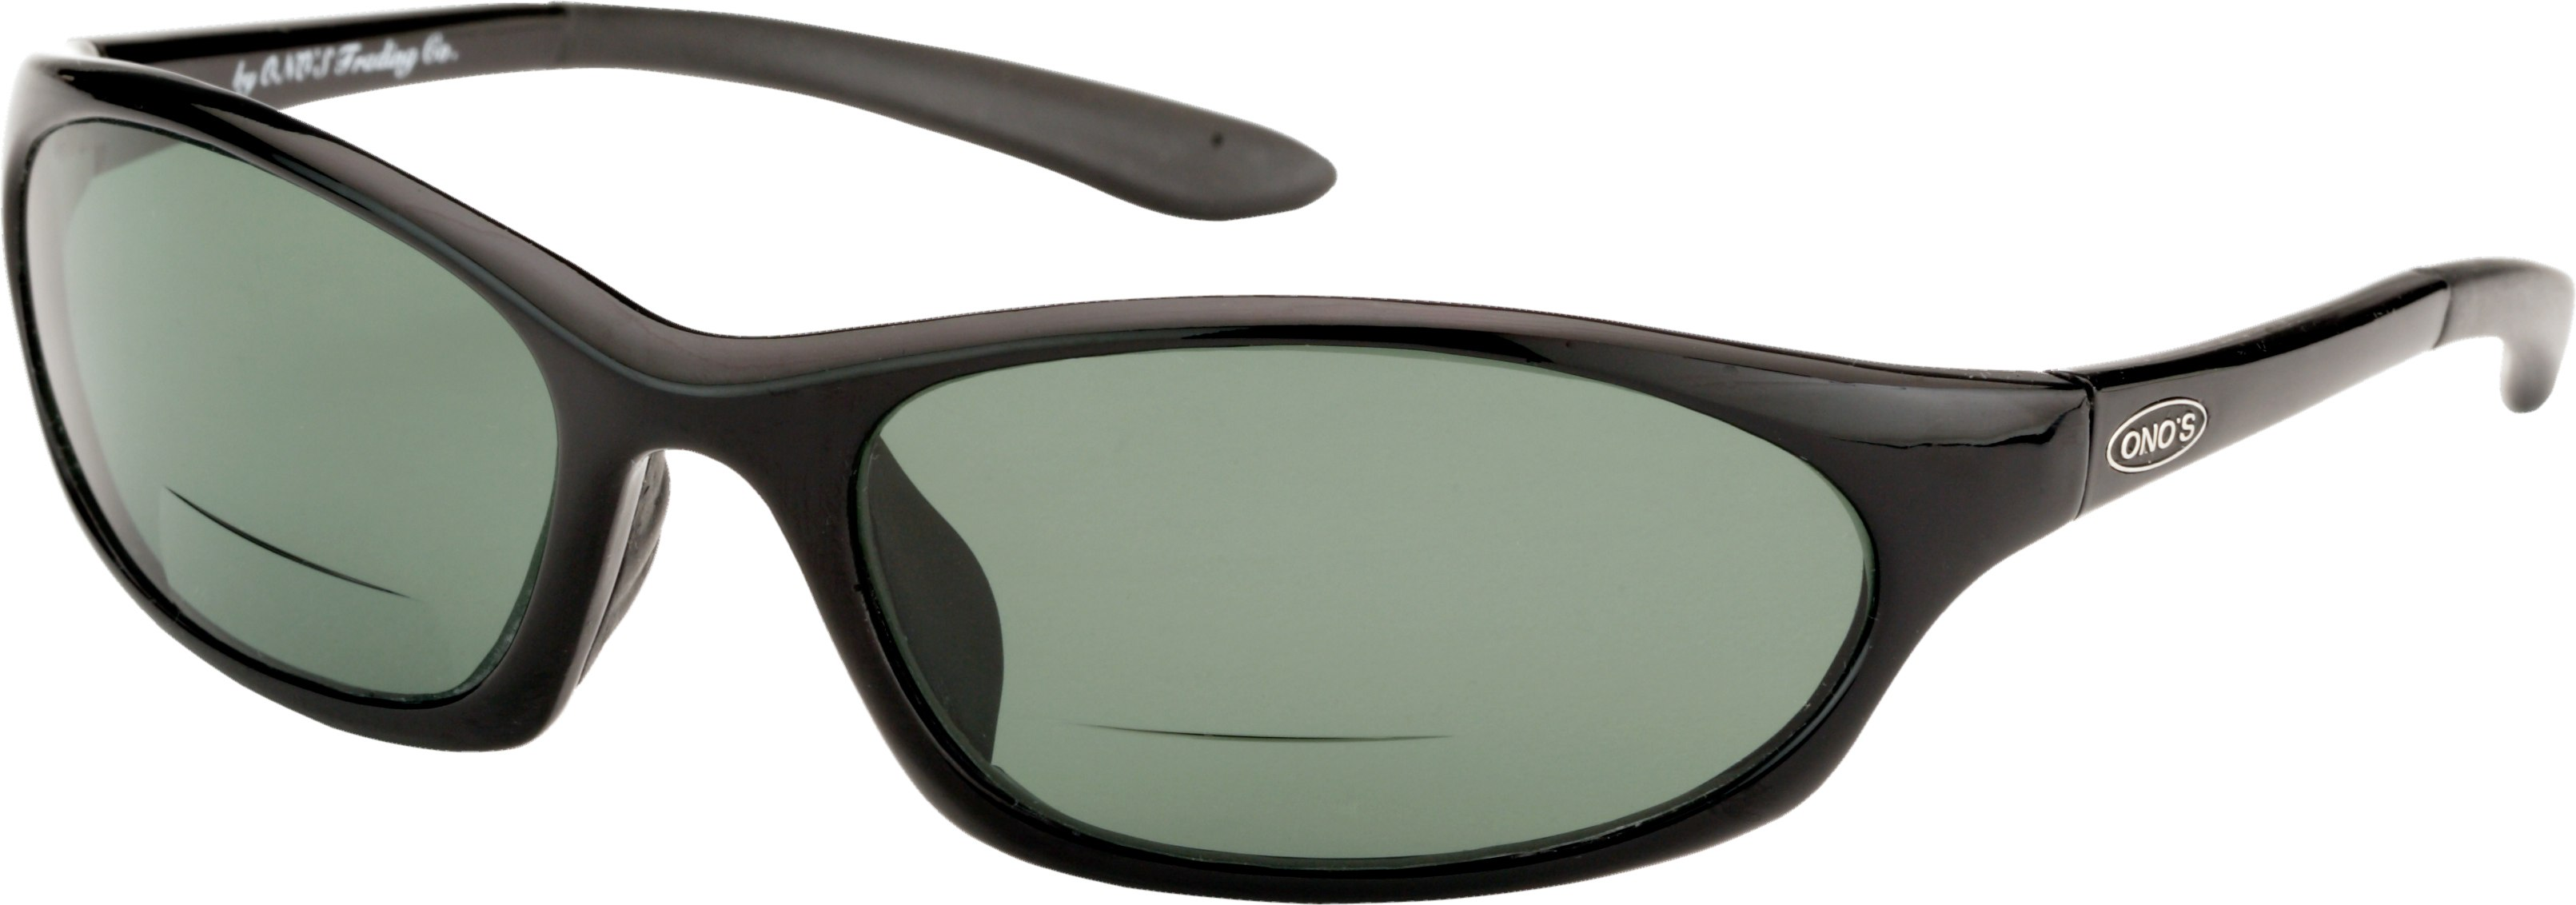 37b311cfd763 Ono s Trading Company introduces three sunglass models for narrow ...